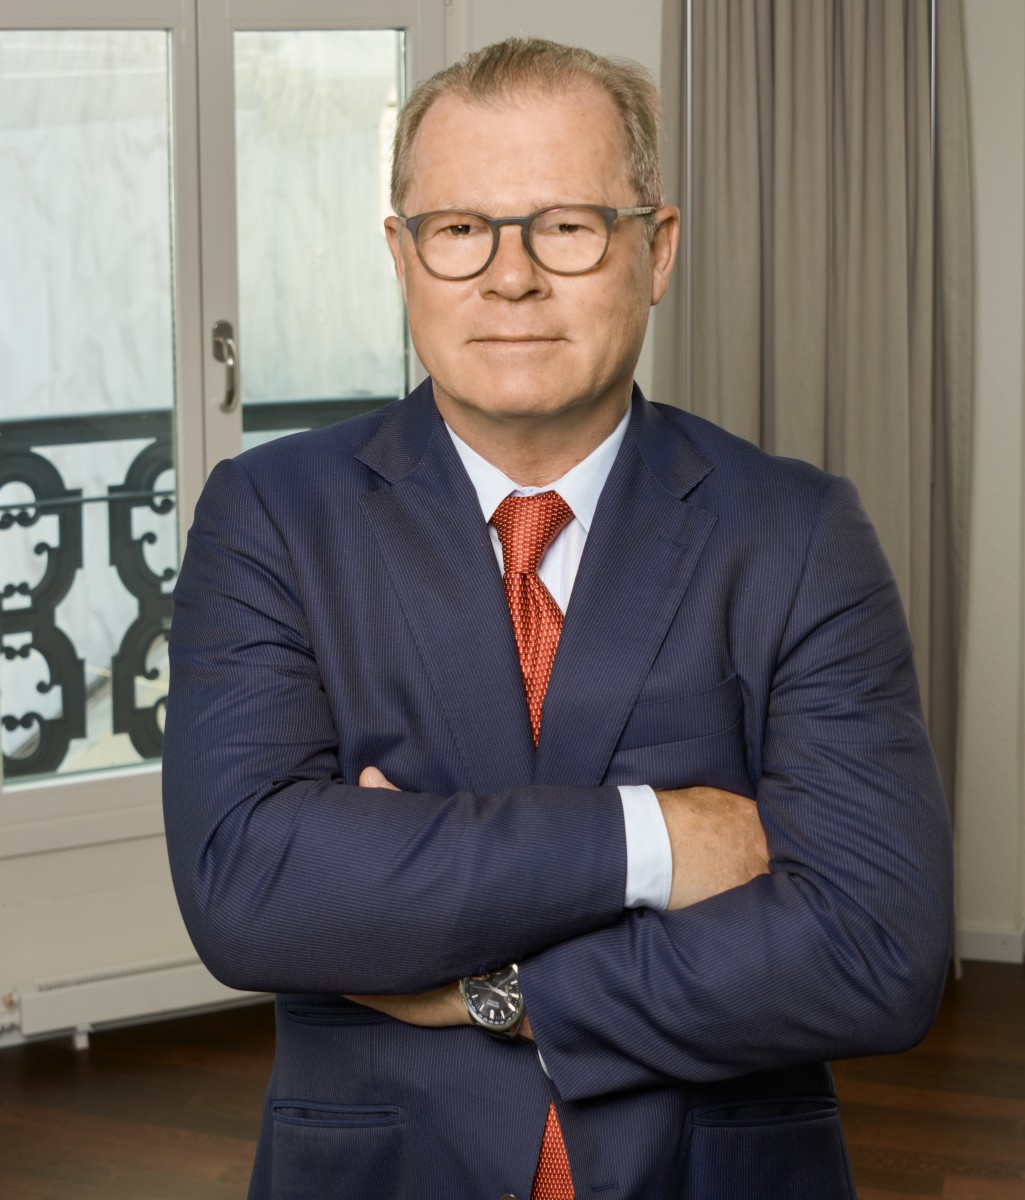 Ernst Widmer - NOMINA FINANCIAL SERVICES LTD.